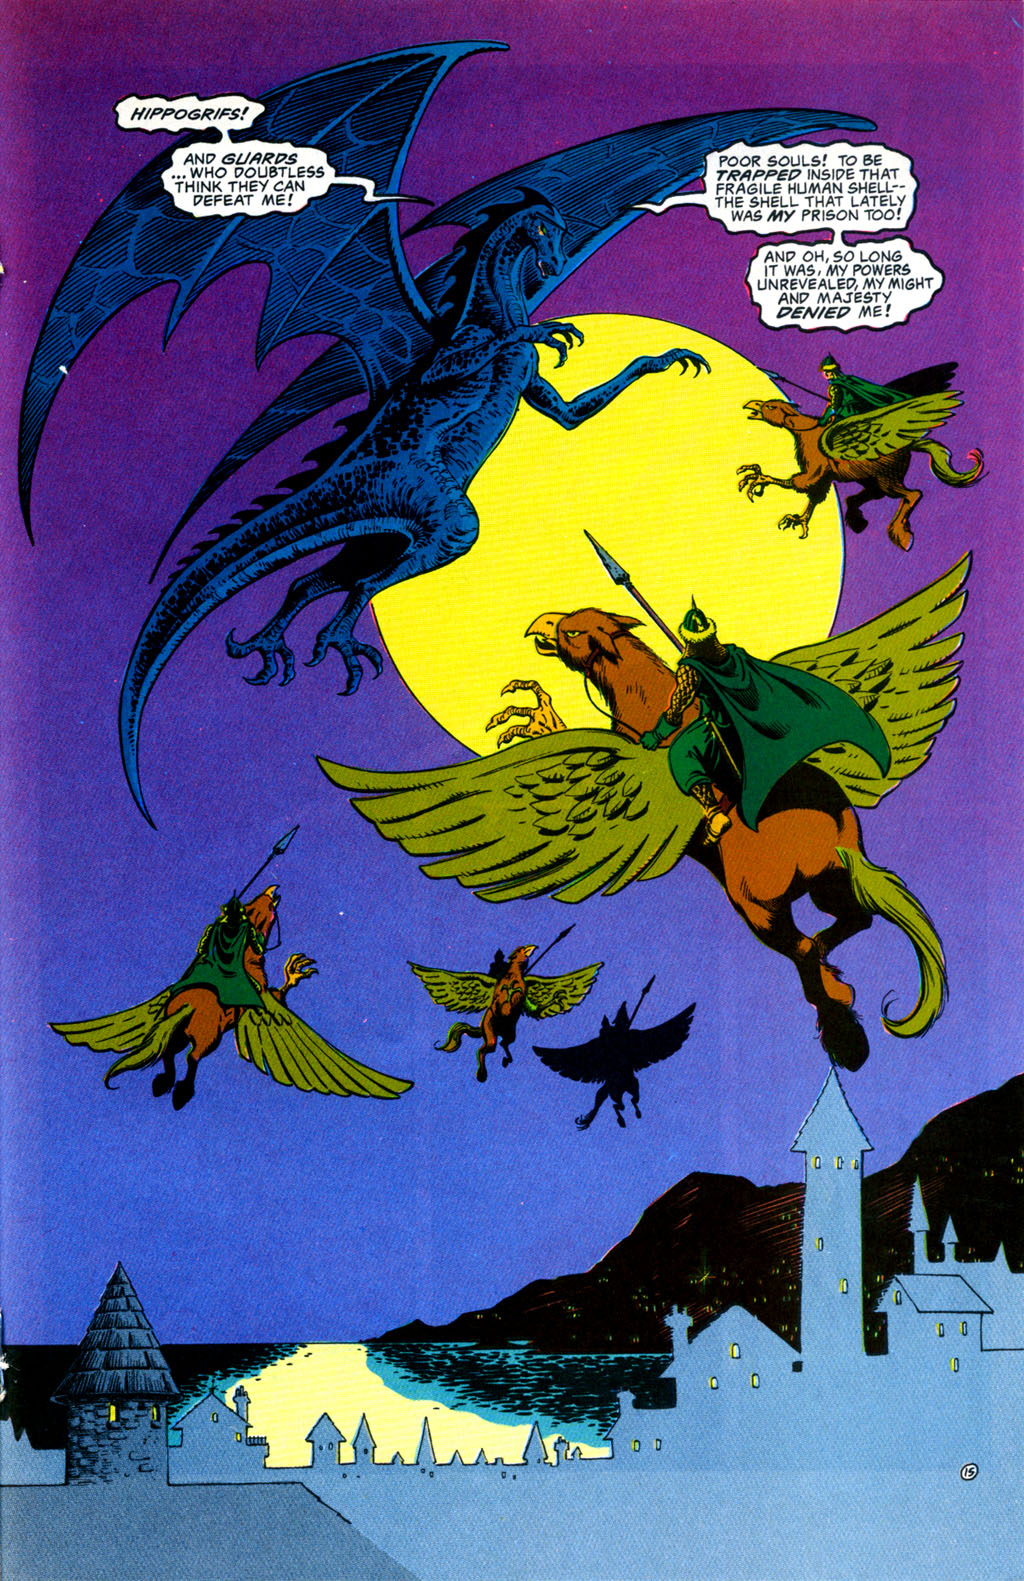 Read online Advanced Dungeons & Dragons comic -  Issue #30 - 15